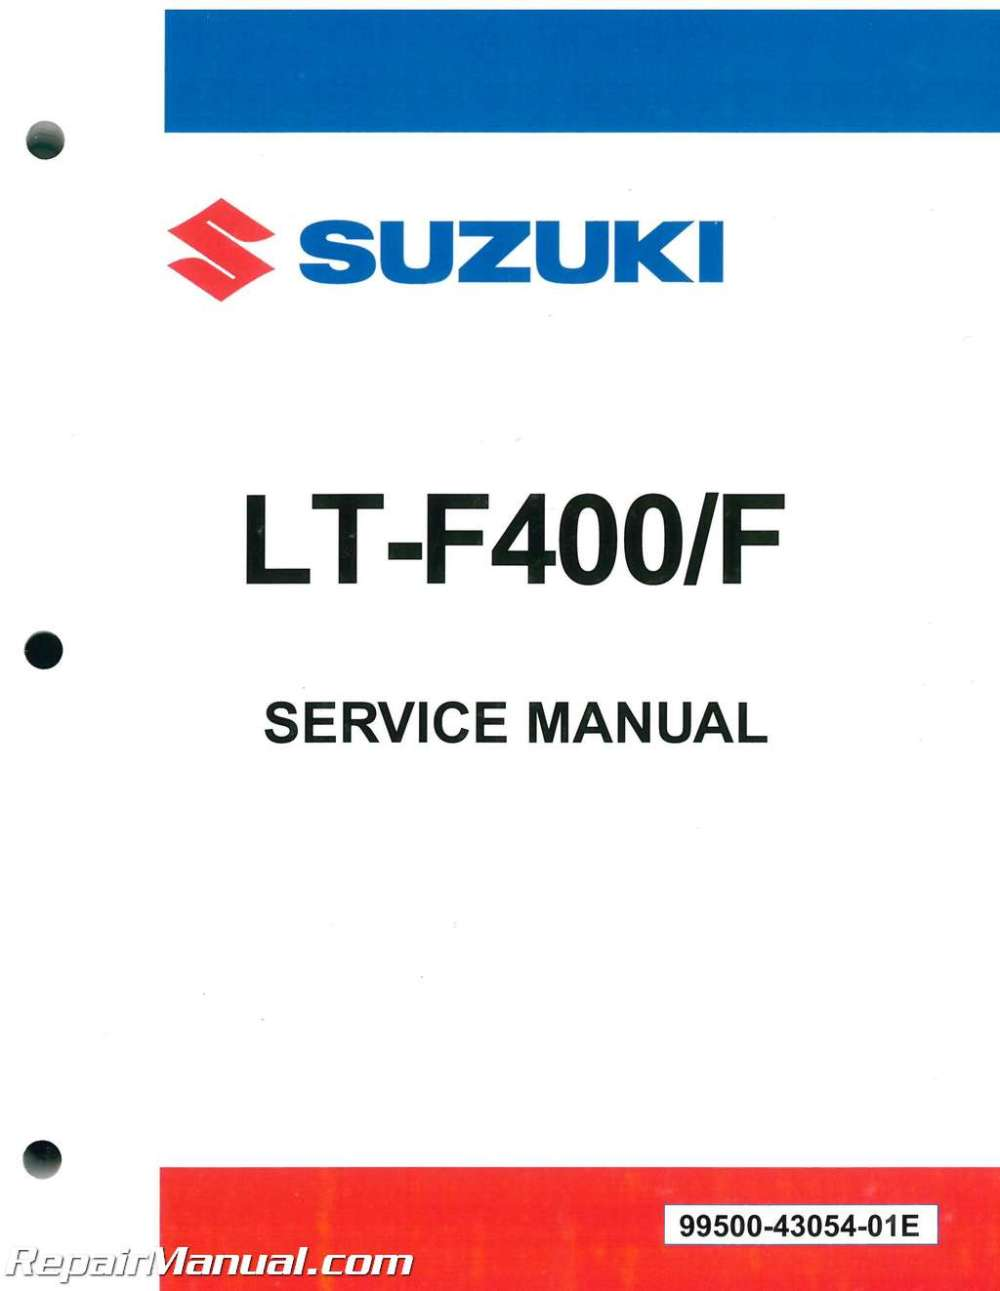 medium resolution of details about suzuki eiger 400 manual lt f400 400f atv 2002 2007 service manual 99500 430